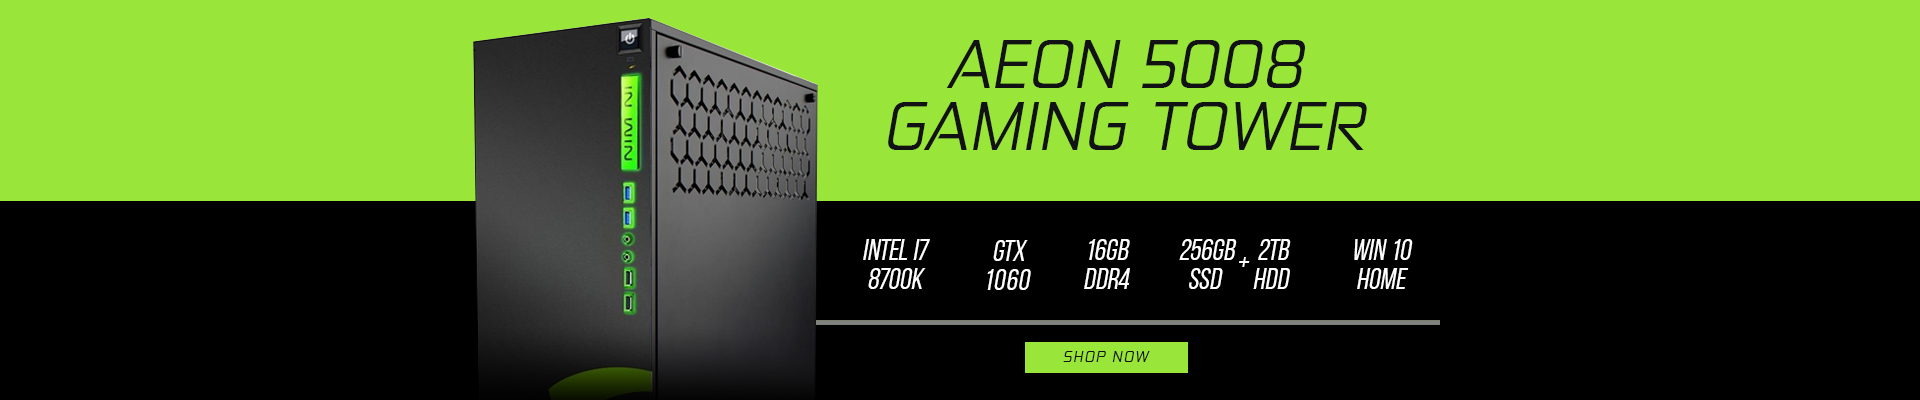 RTGS - Aeon 5008 Gaming Tower